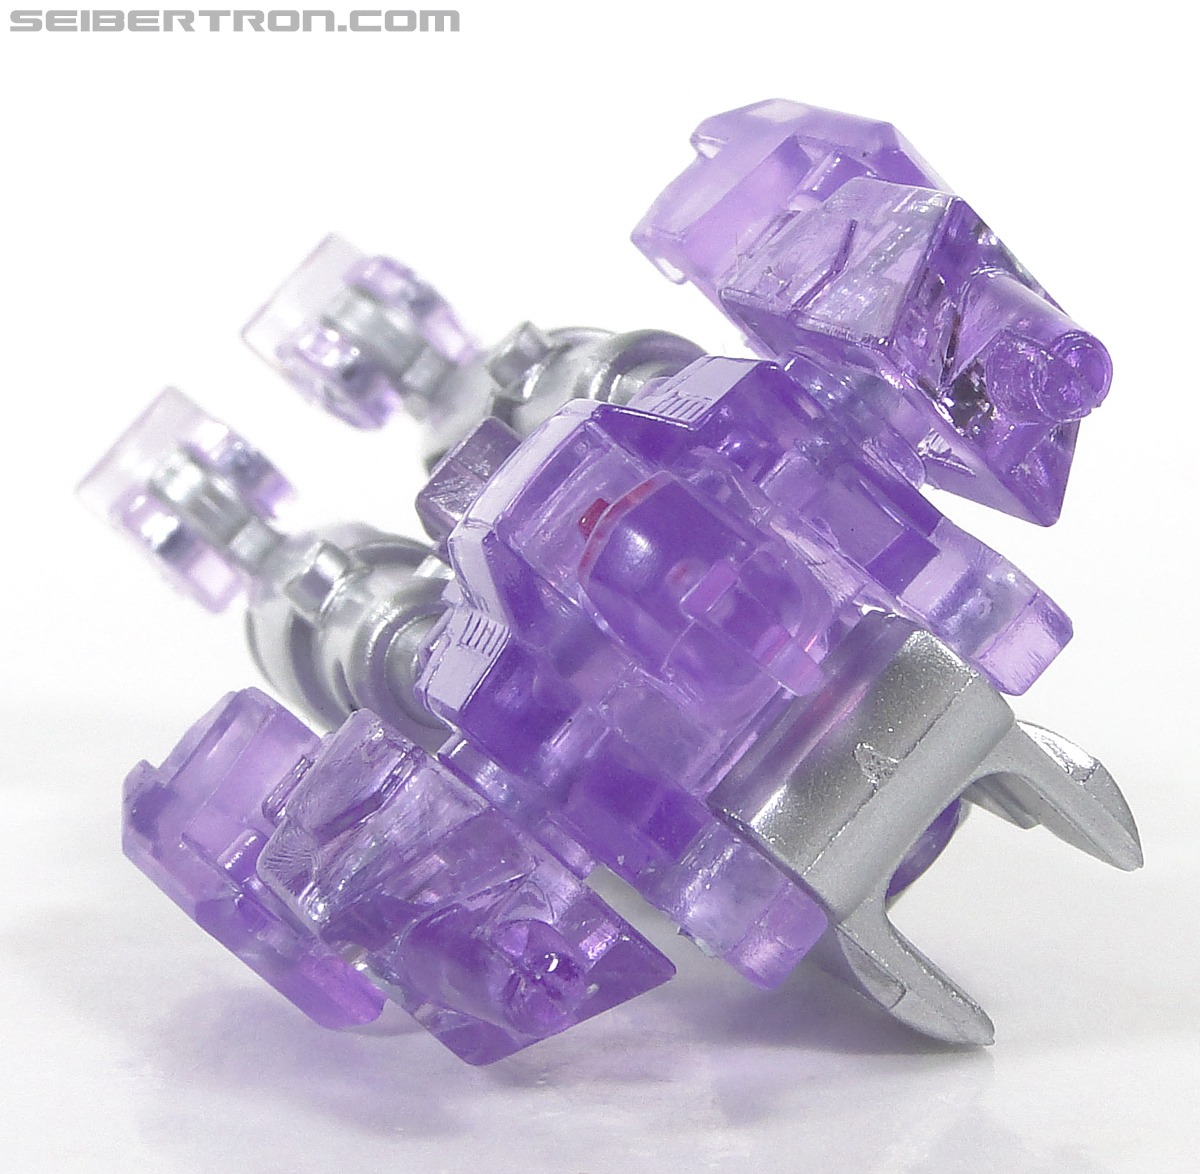 Transformers United Nightstick (e-Hobby) (Image #35 of 74)